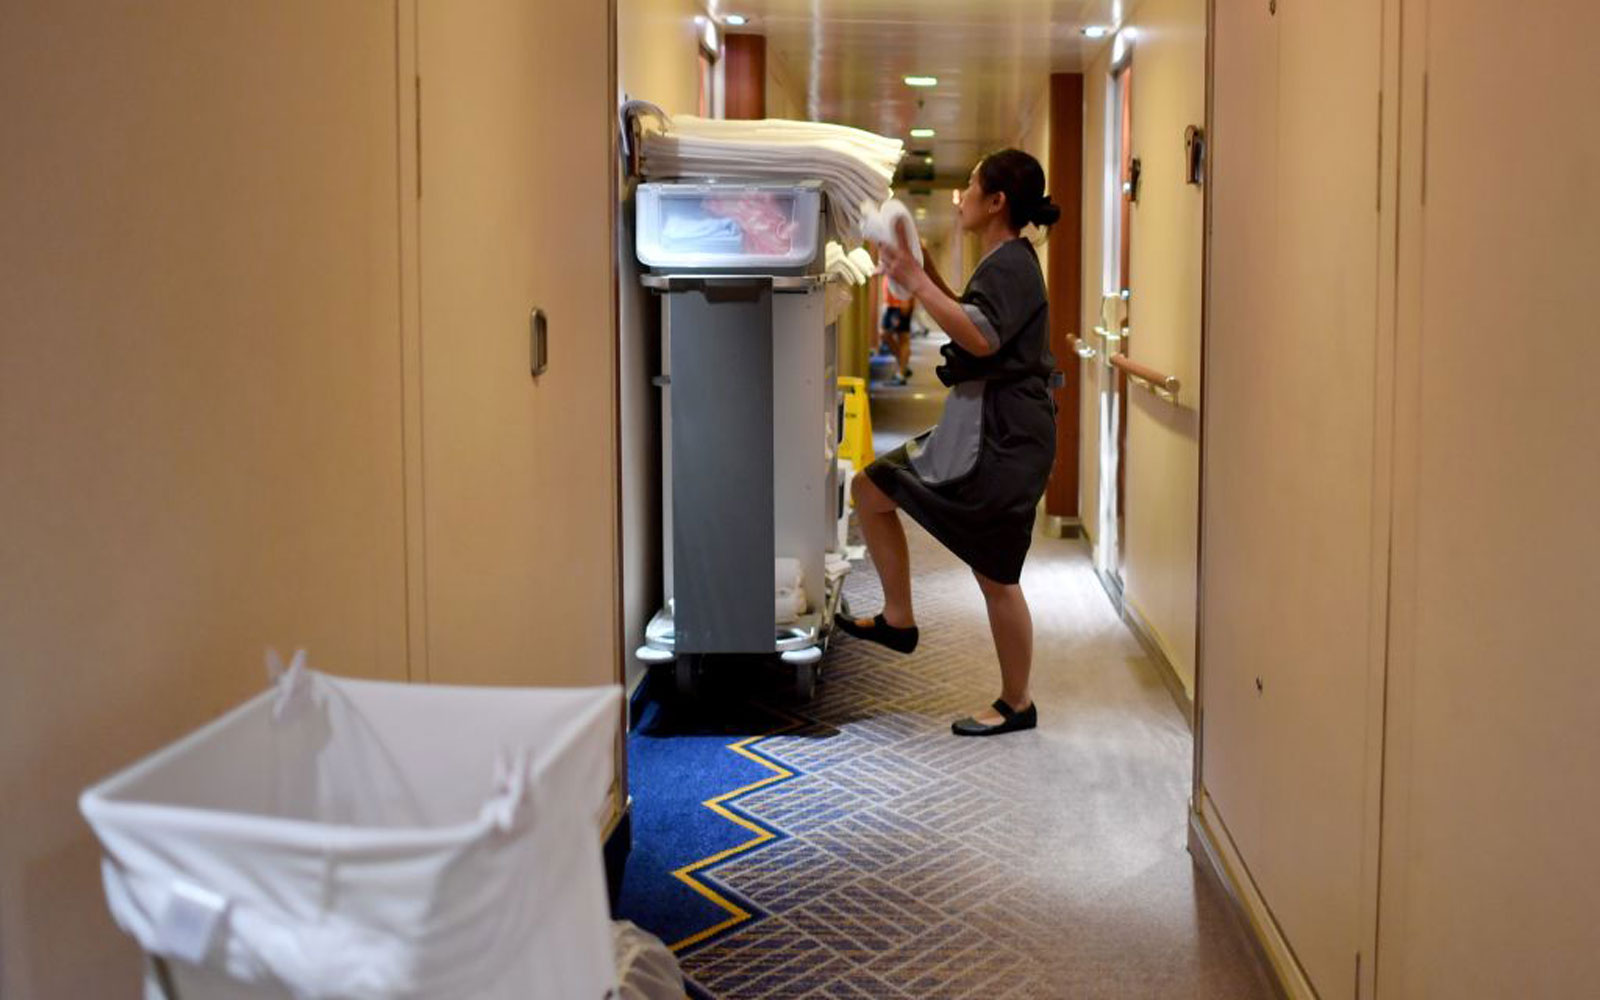 Cruise Ship Workers Reveal What It's Really Like to Live at Sea